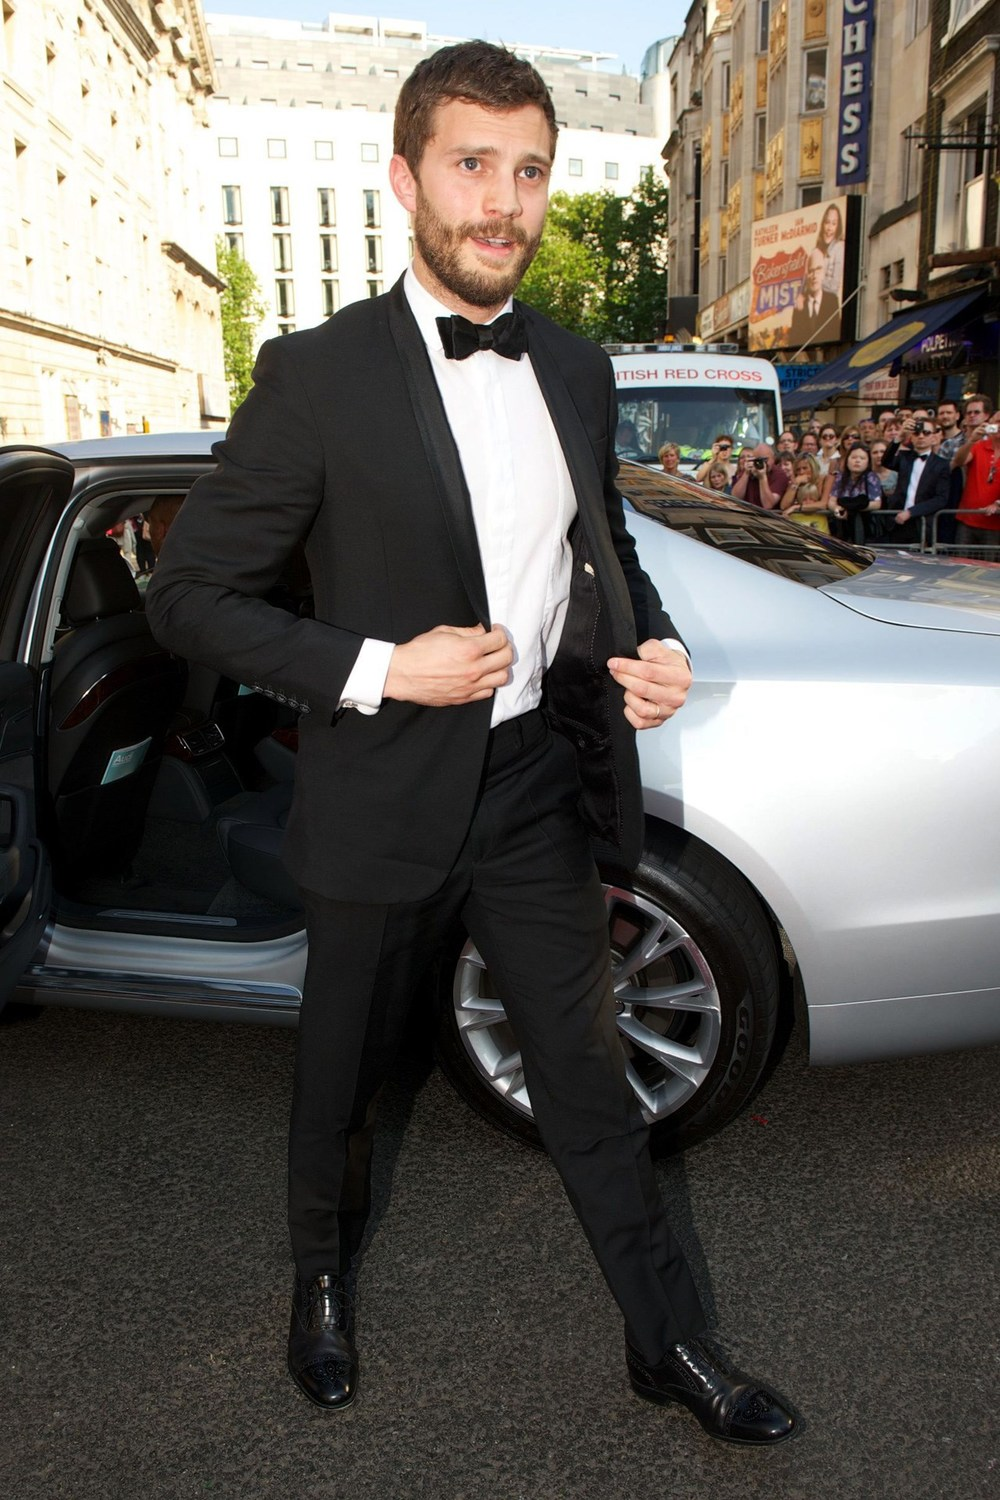 Jamie-Dornan-GQ-19May14_rex_b.jpg